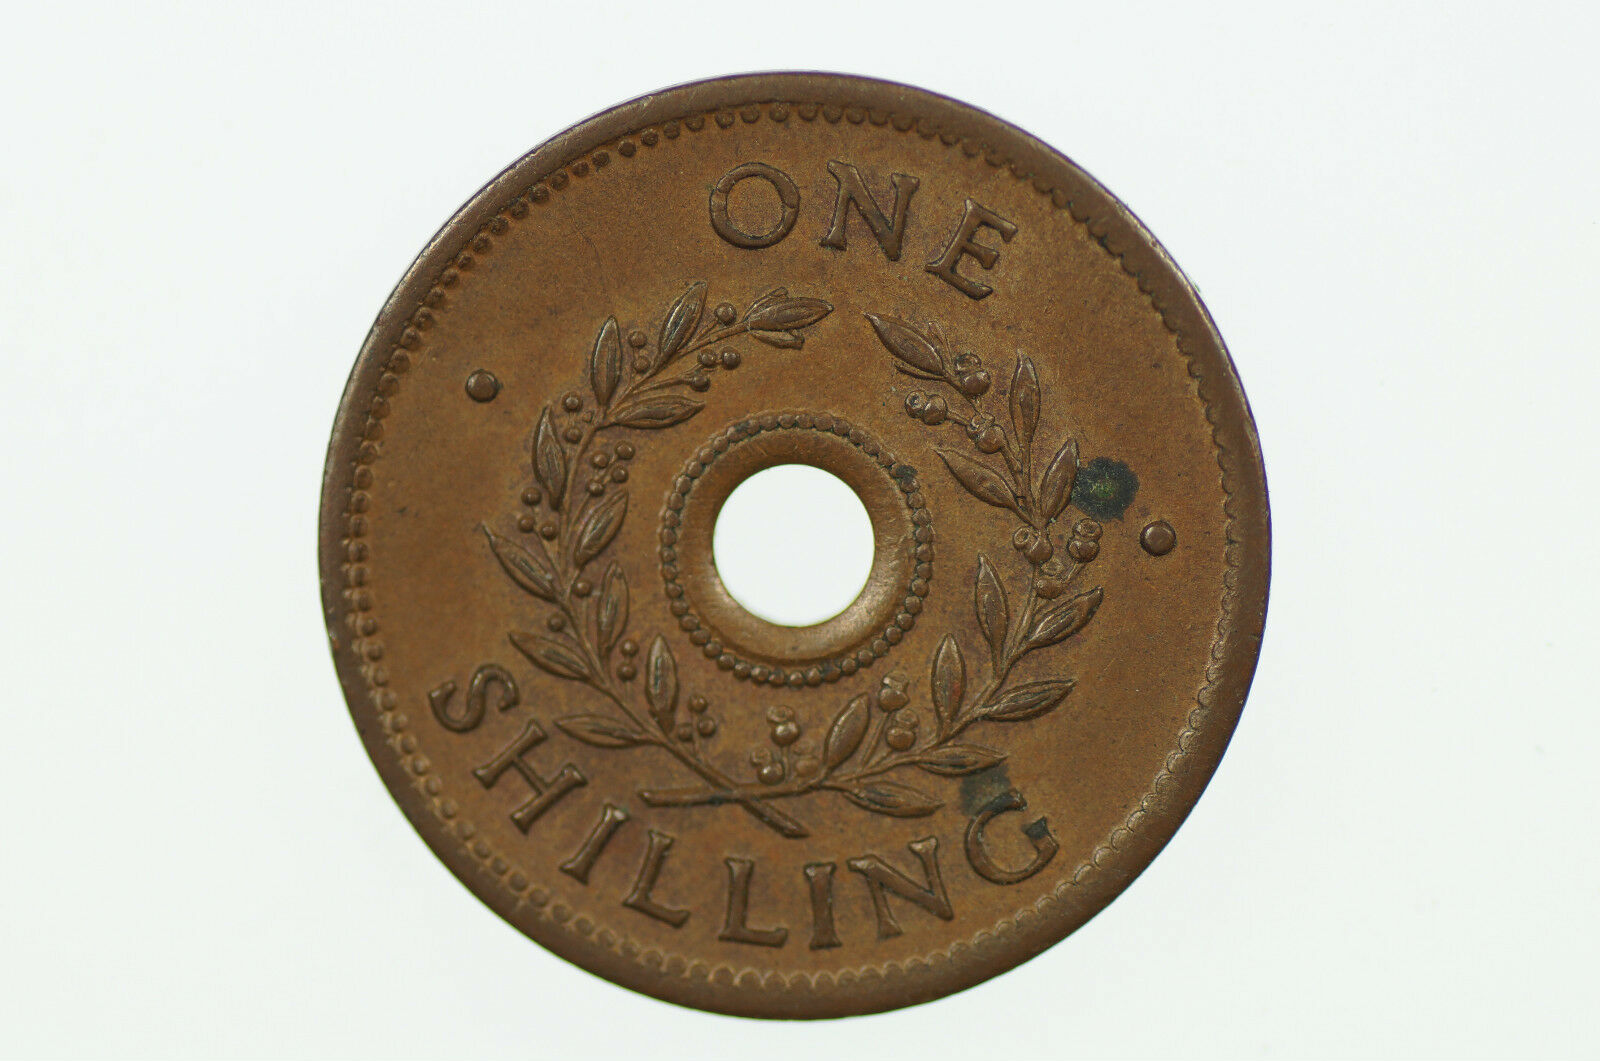 Australian Internment Camps One Shilling POW Token In Uncirculated Condition